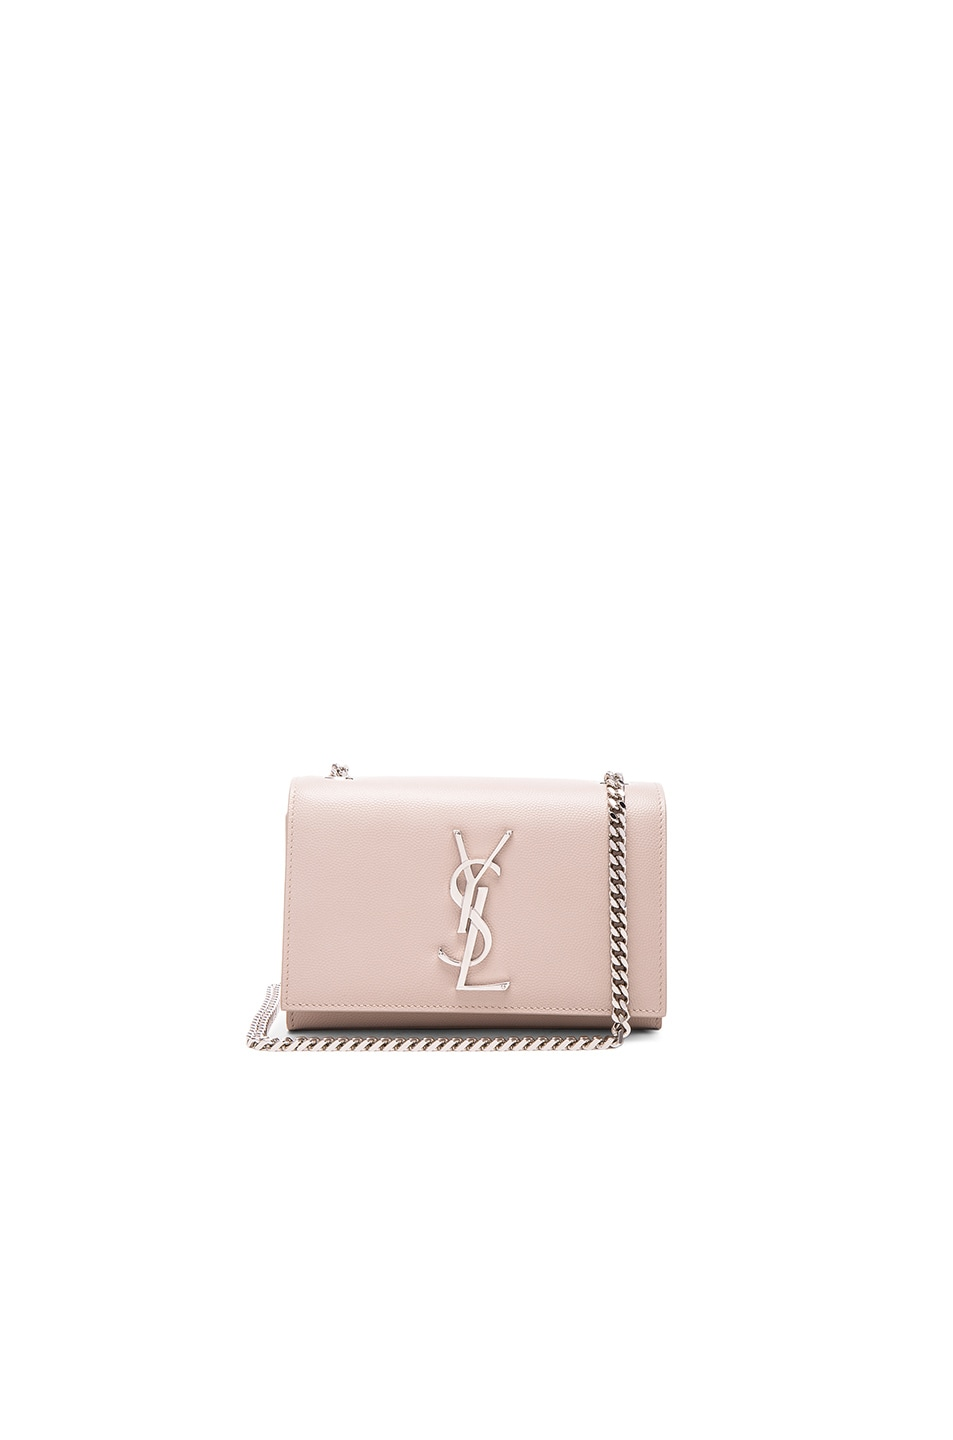 Image 1 of Saint Laurent Small Monogramme Chain Bag in Powder Rose